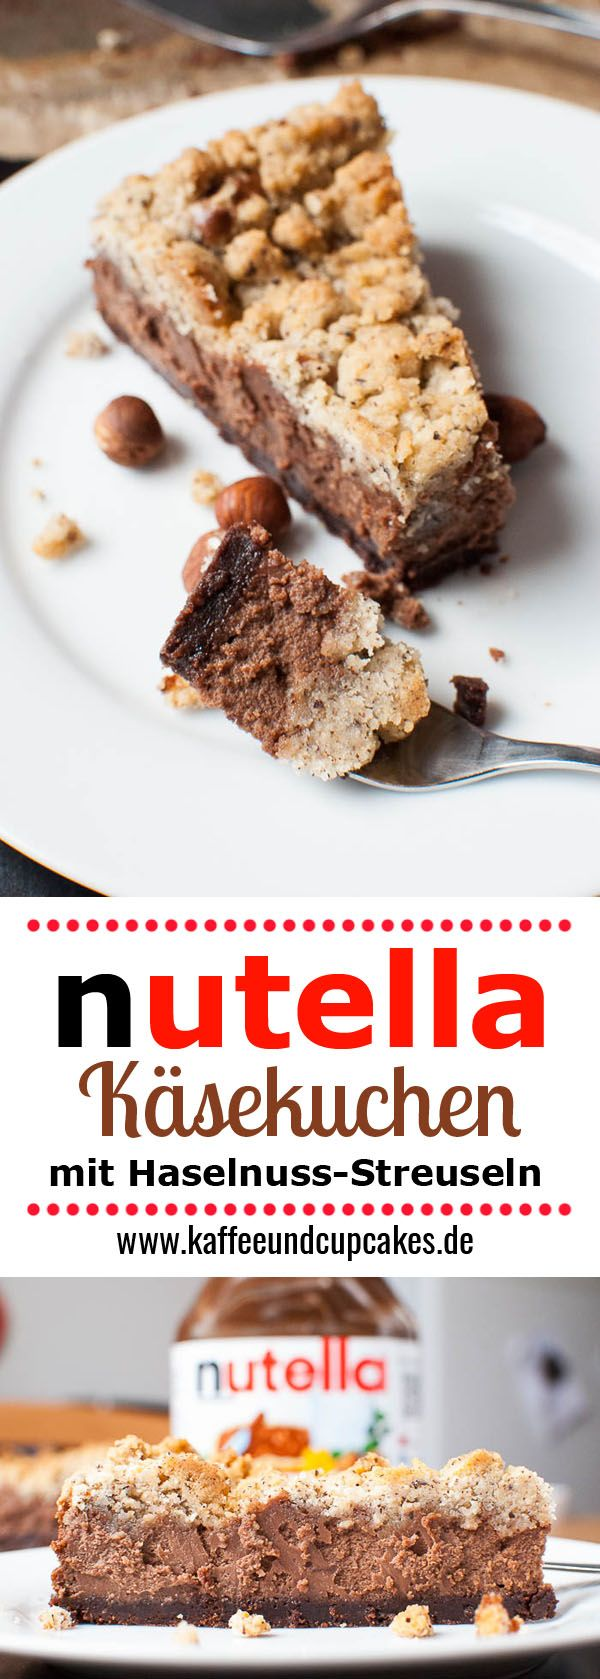 Nutella cheesecake with chocolate topping and hazelnut crumble topping   – Leckere Rezepte – Tasty recipies